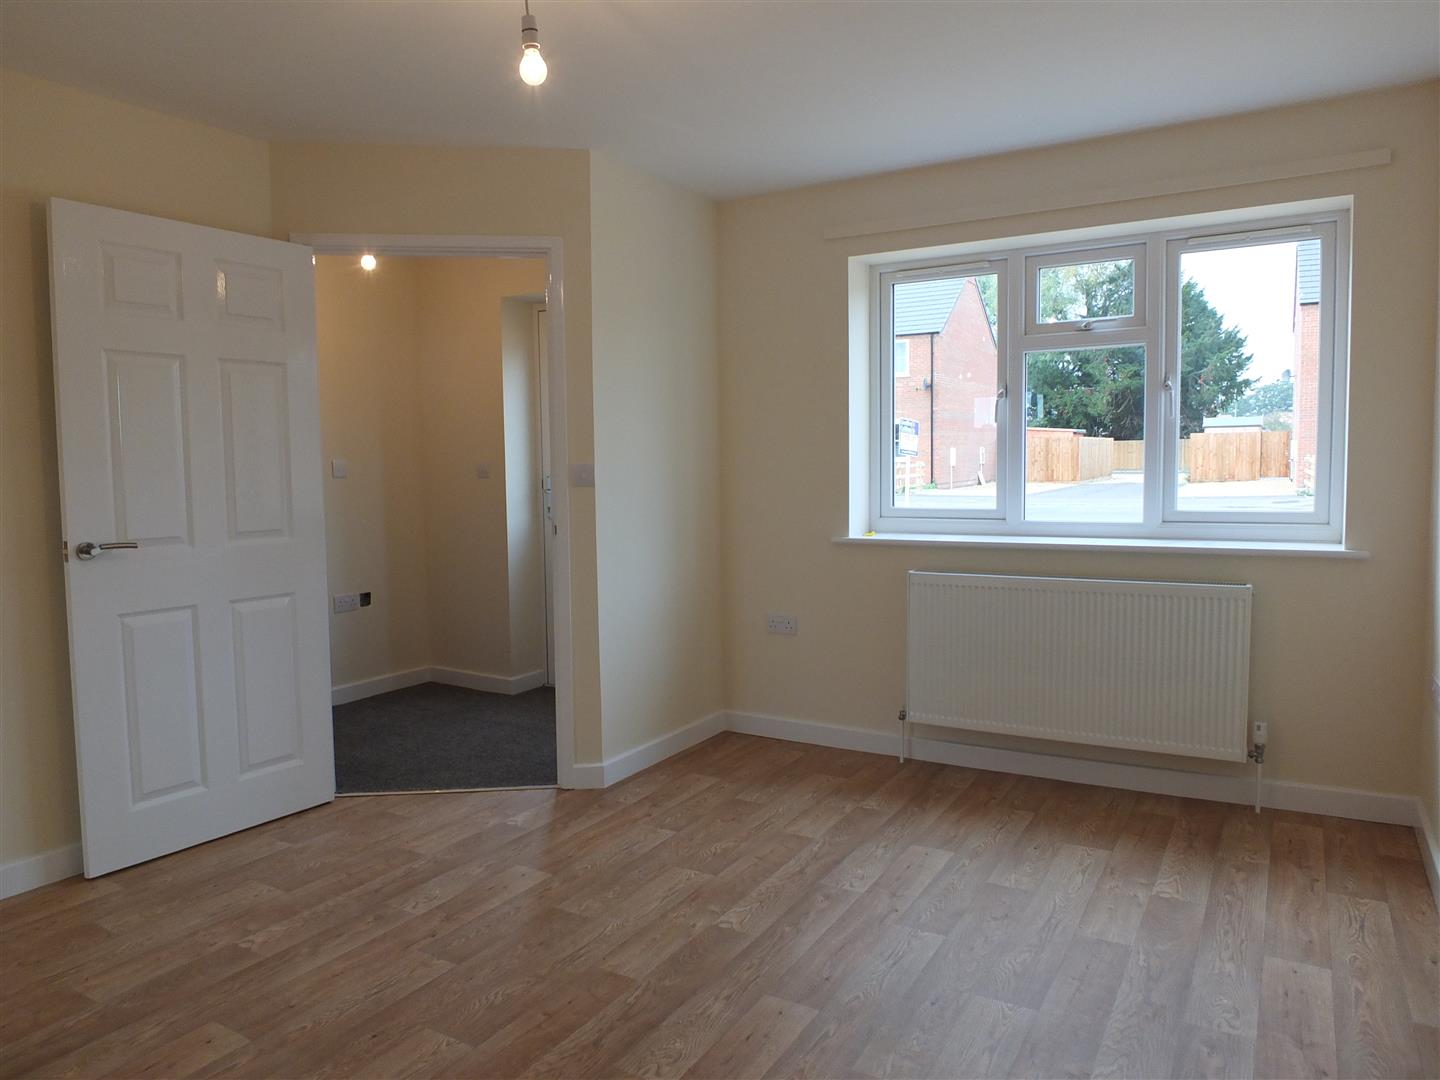 3 bed house to rent in Long Sutton, PE12 9LE  - Property Image 8